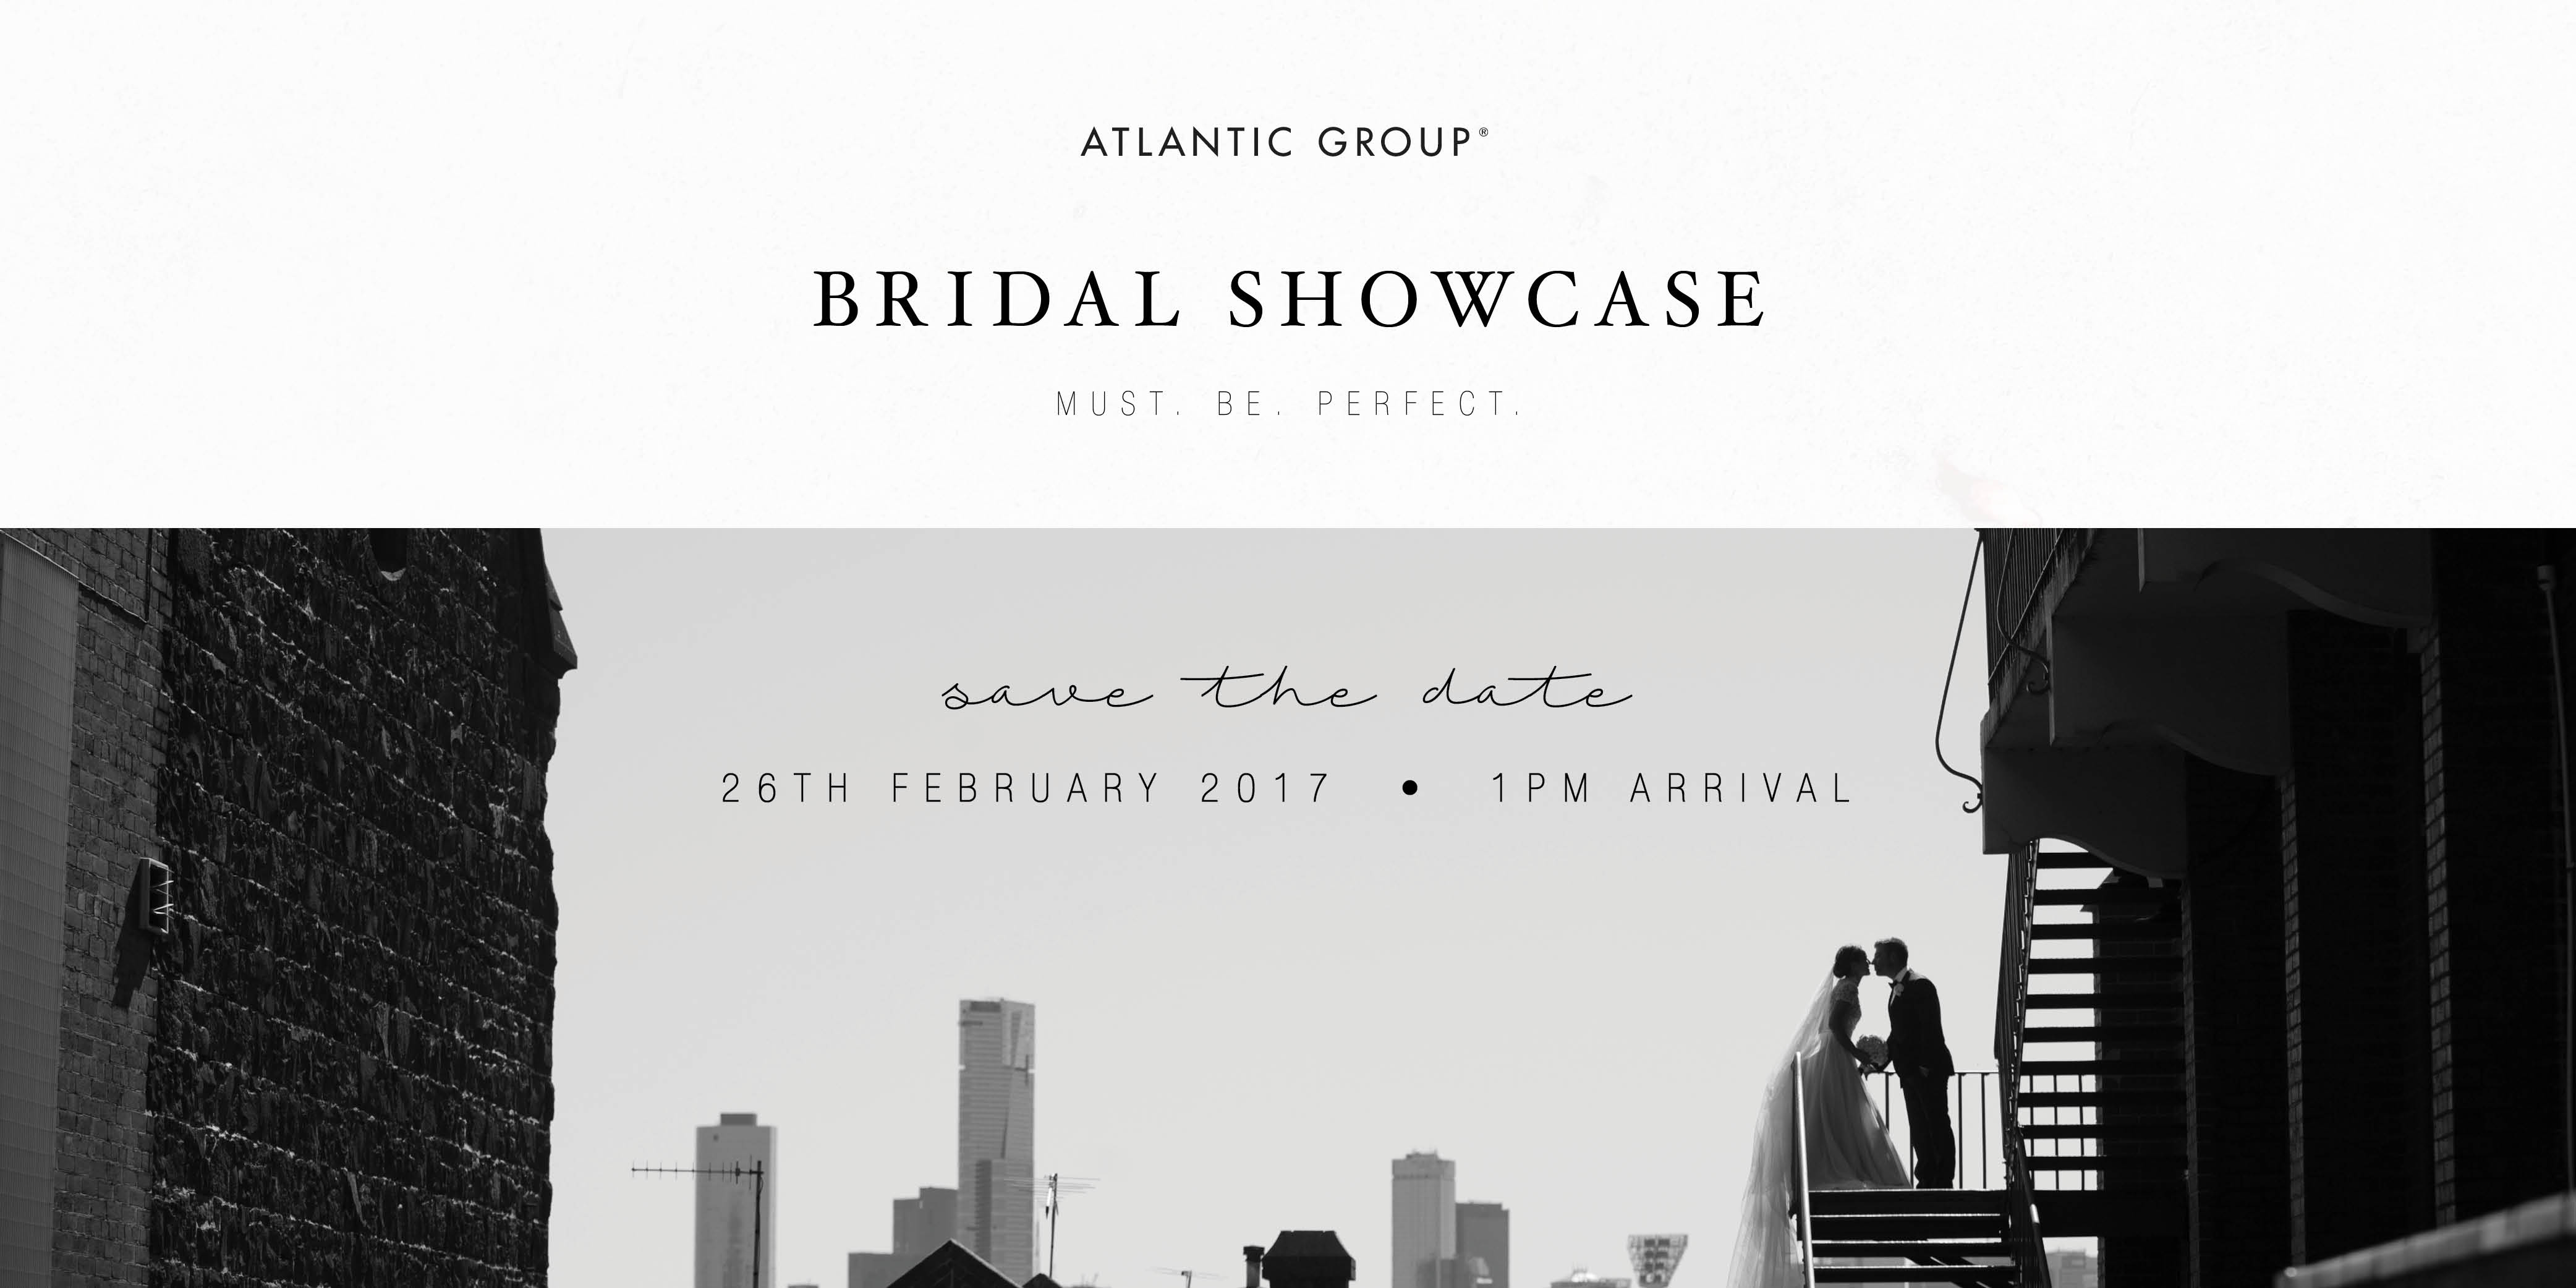 Atlantic Group Bridal Showcase 2017 Melbourne Expo